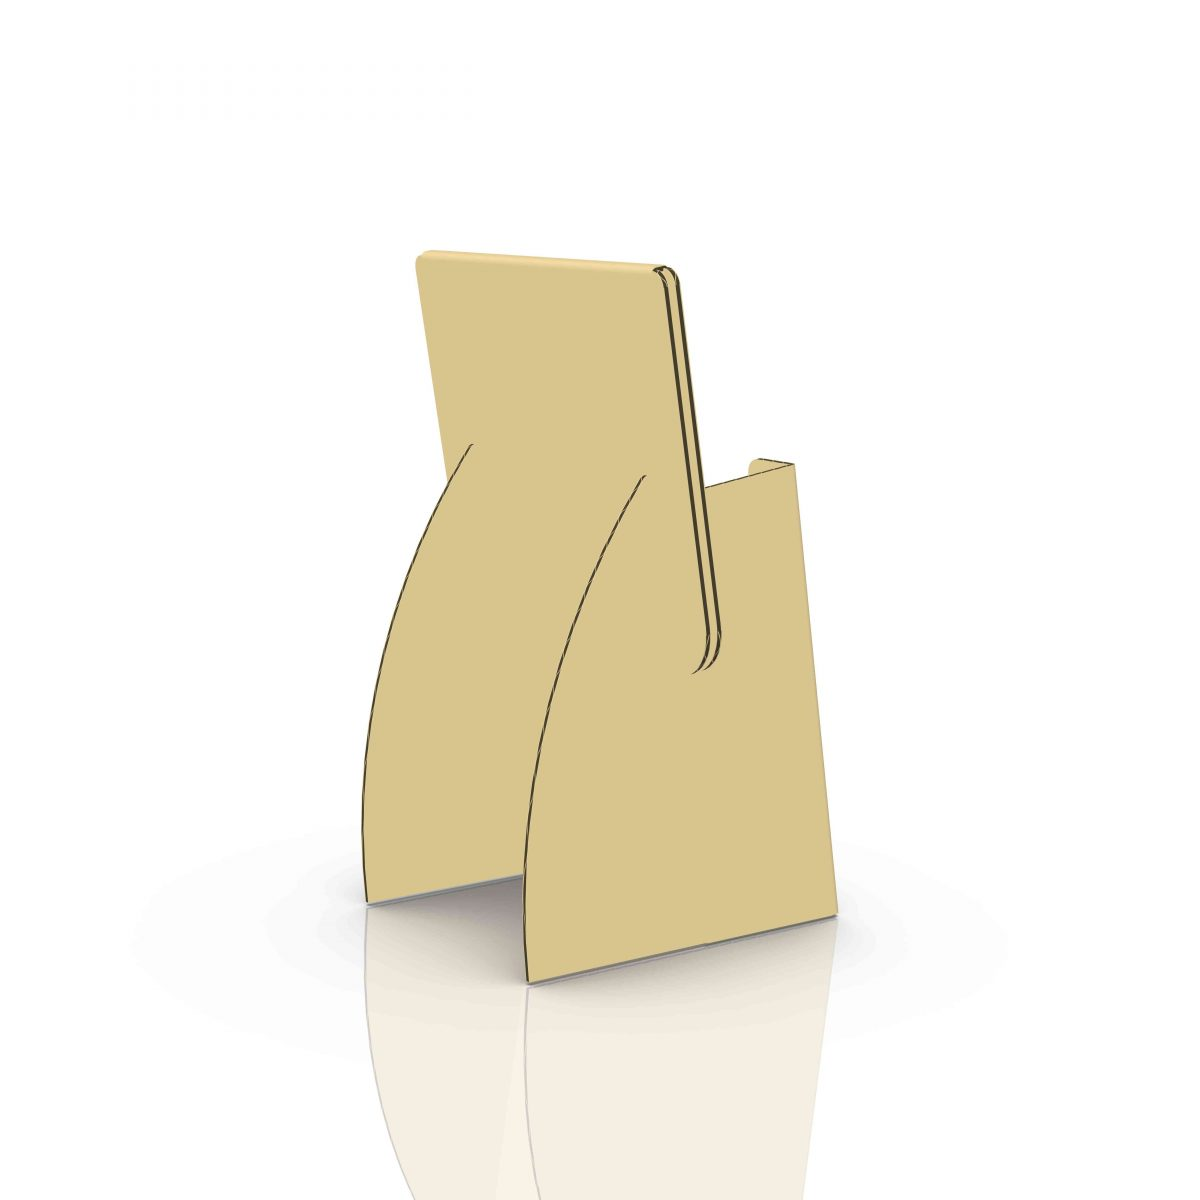 Small Cardboard counter display with header for cards or pamphlet, side/back view - 3d kraft